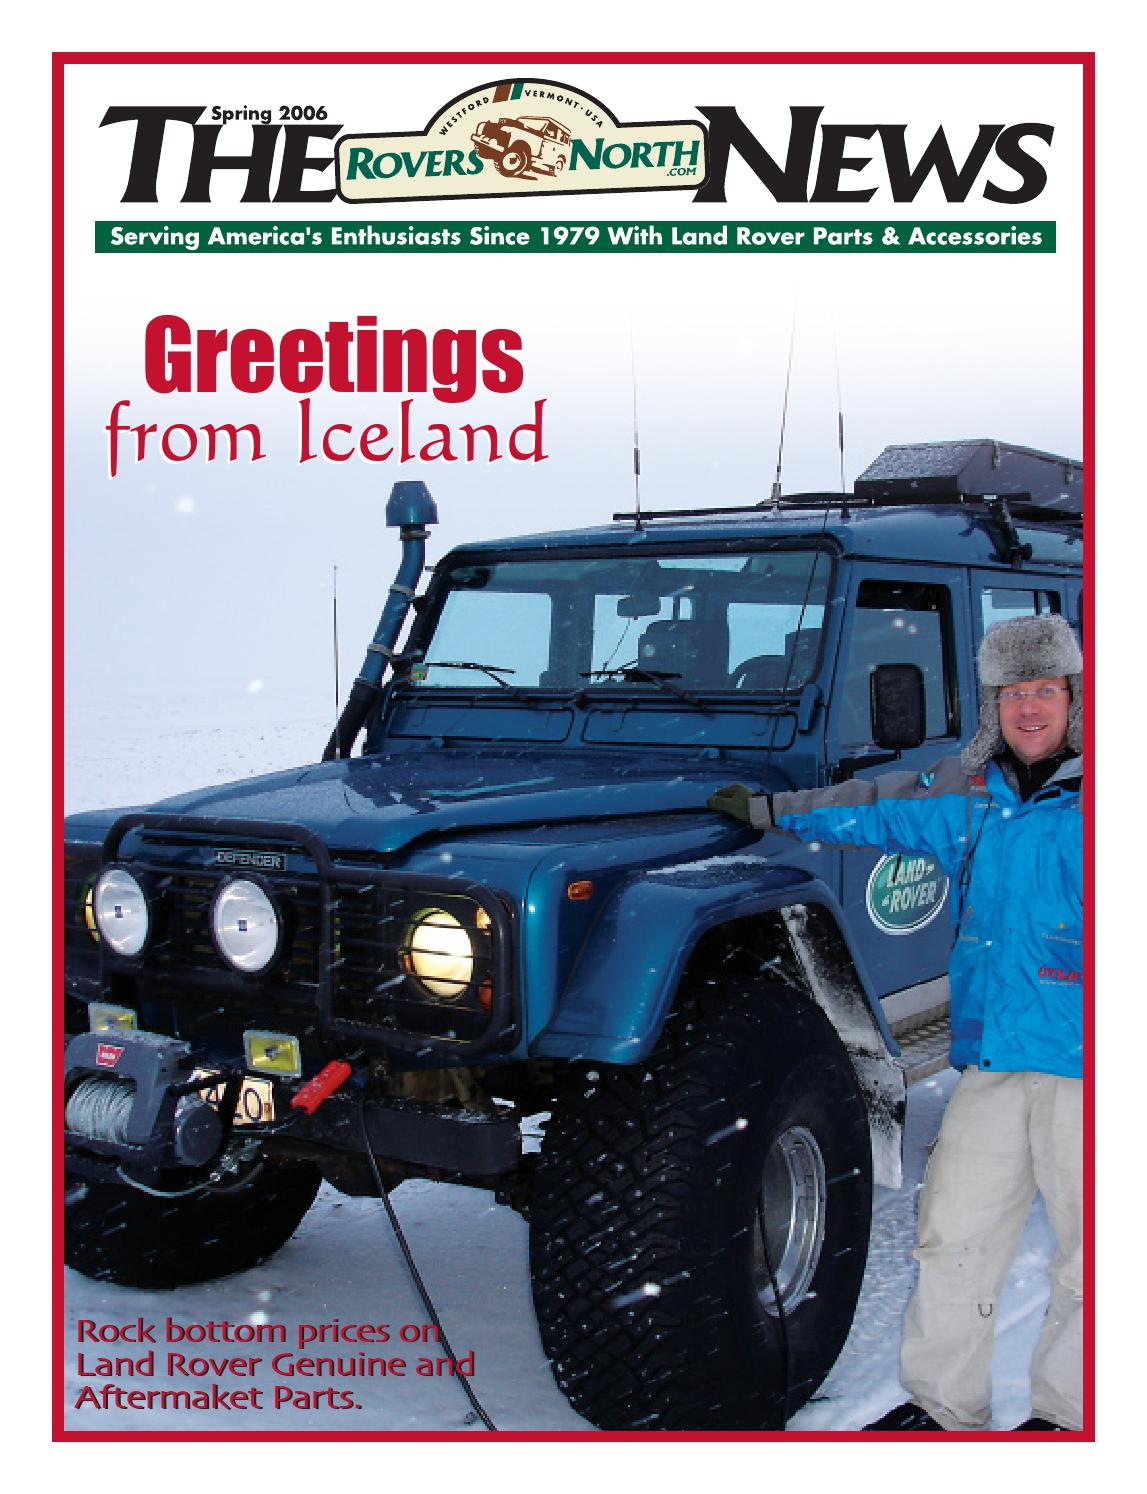 Spring 2006 Rovers North News By Issuu Want To Wire In An Ampmeter A 12v Landrover